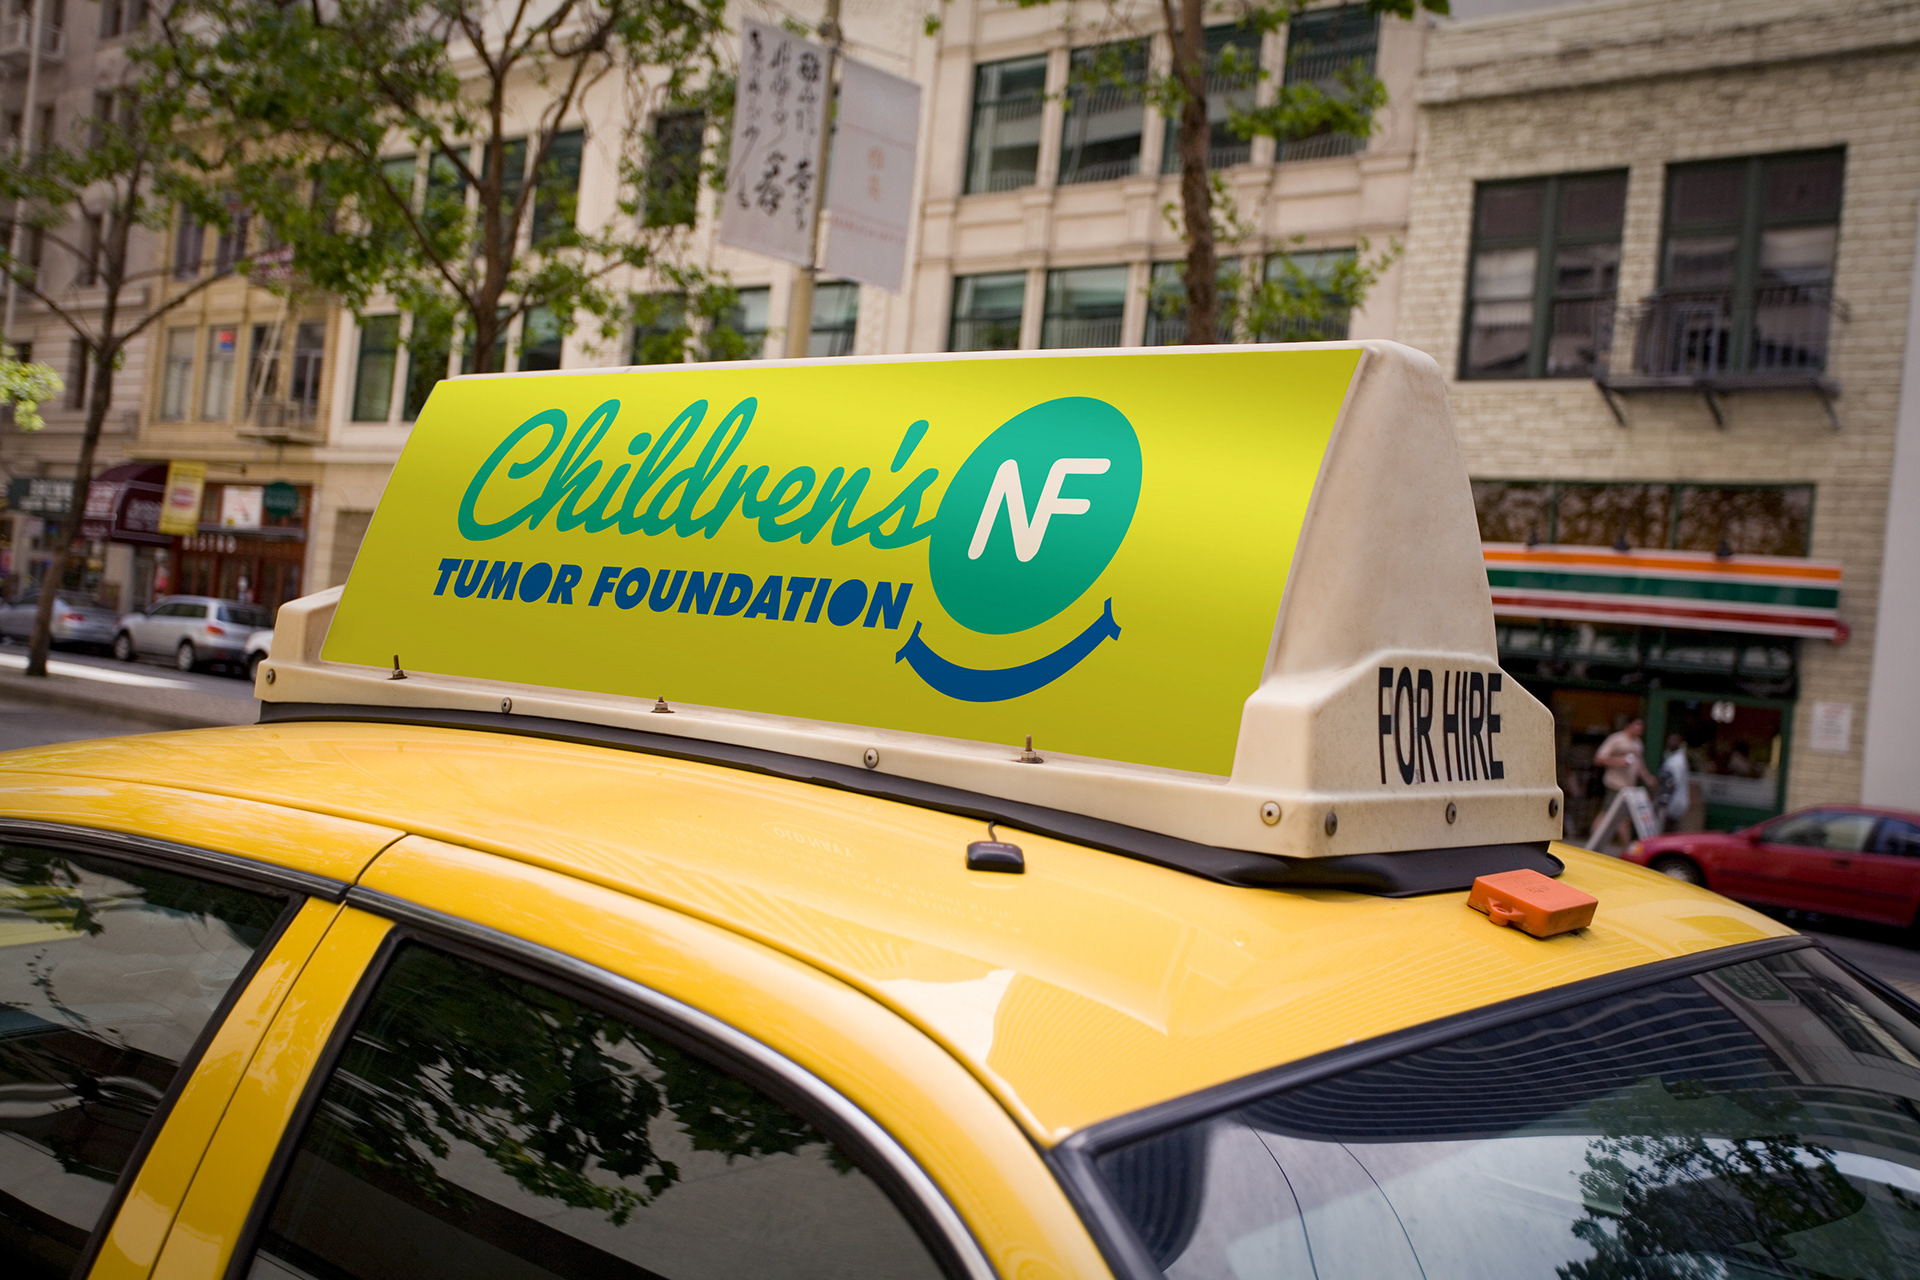 childrens-tumor-foundation-taxi-sign.jpg